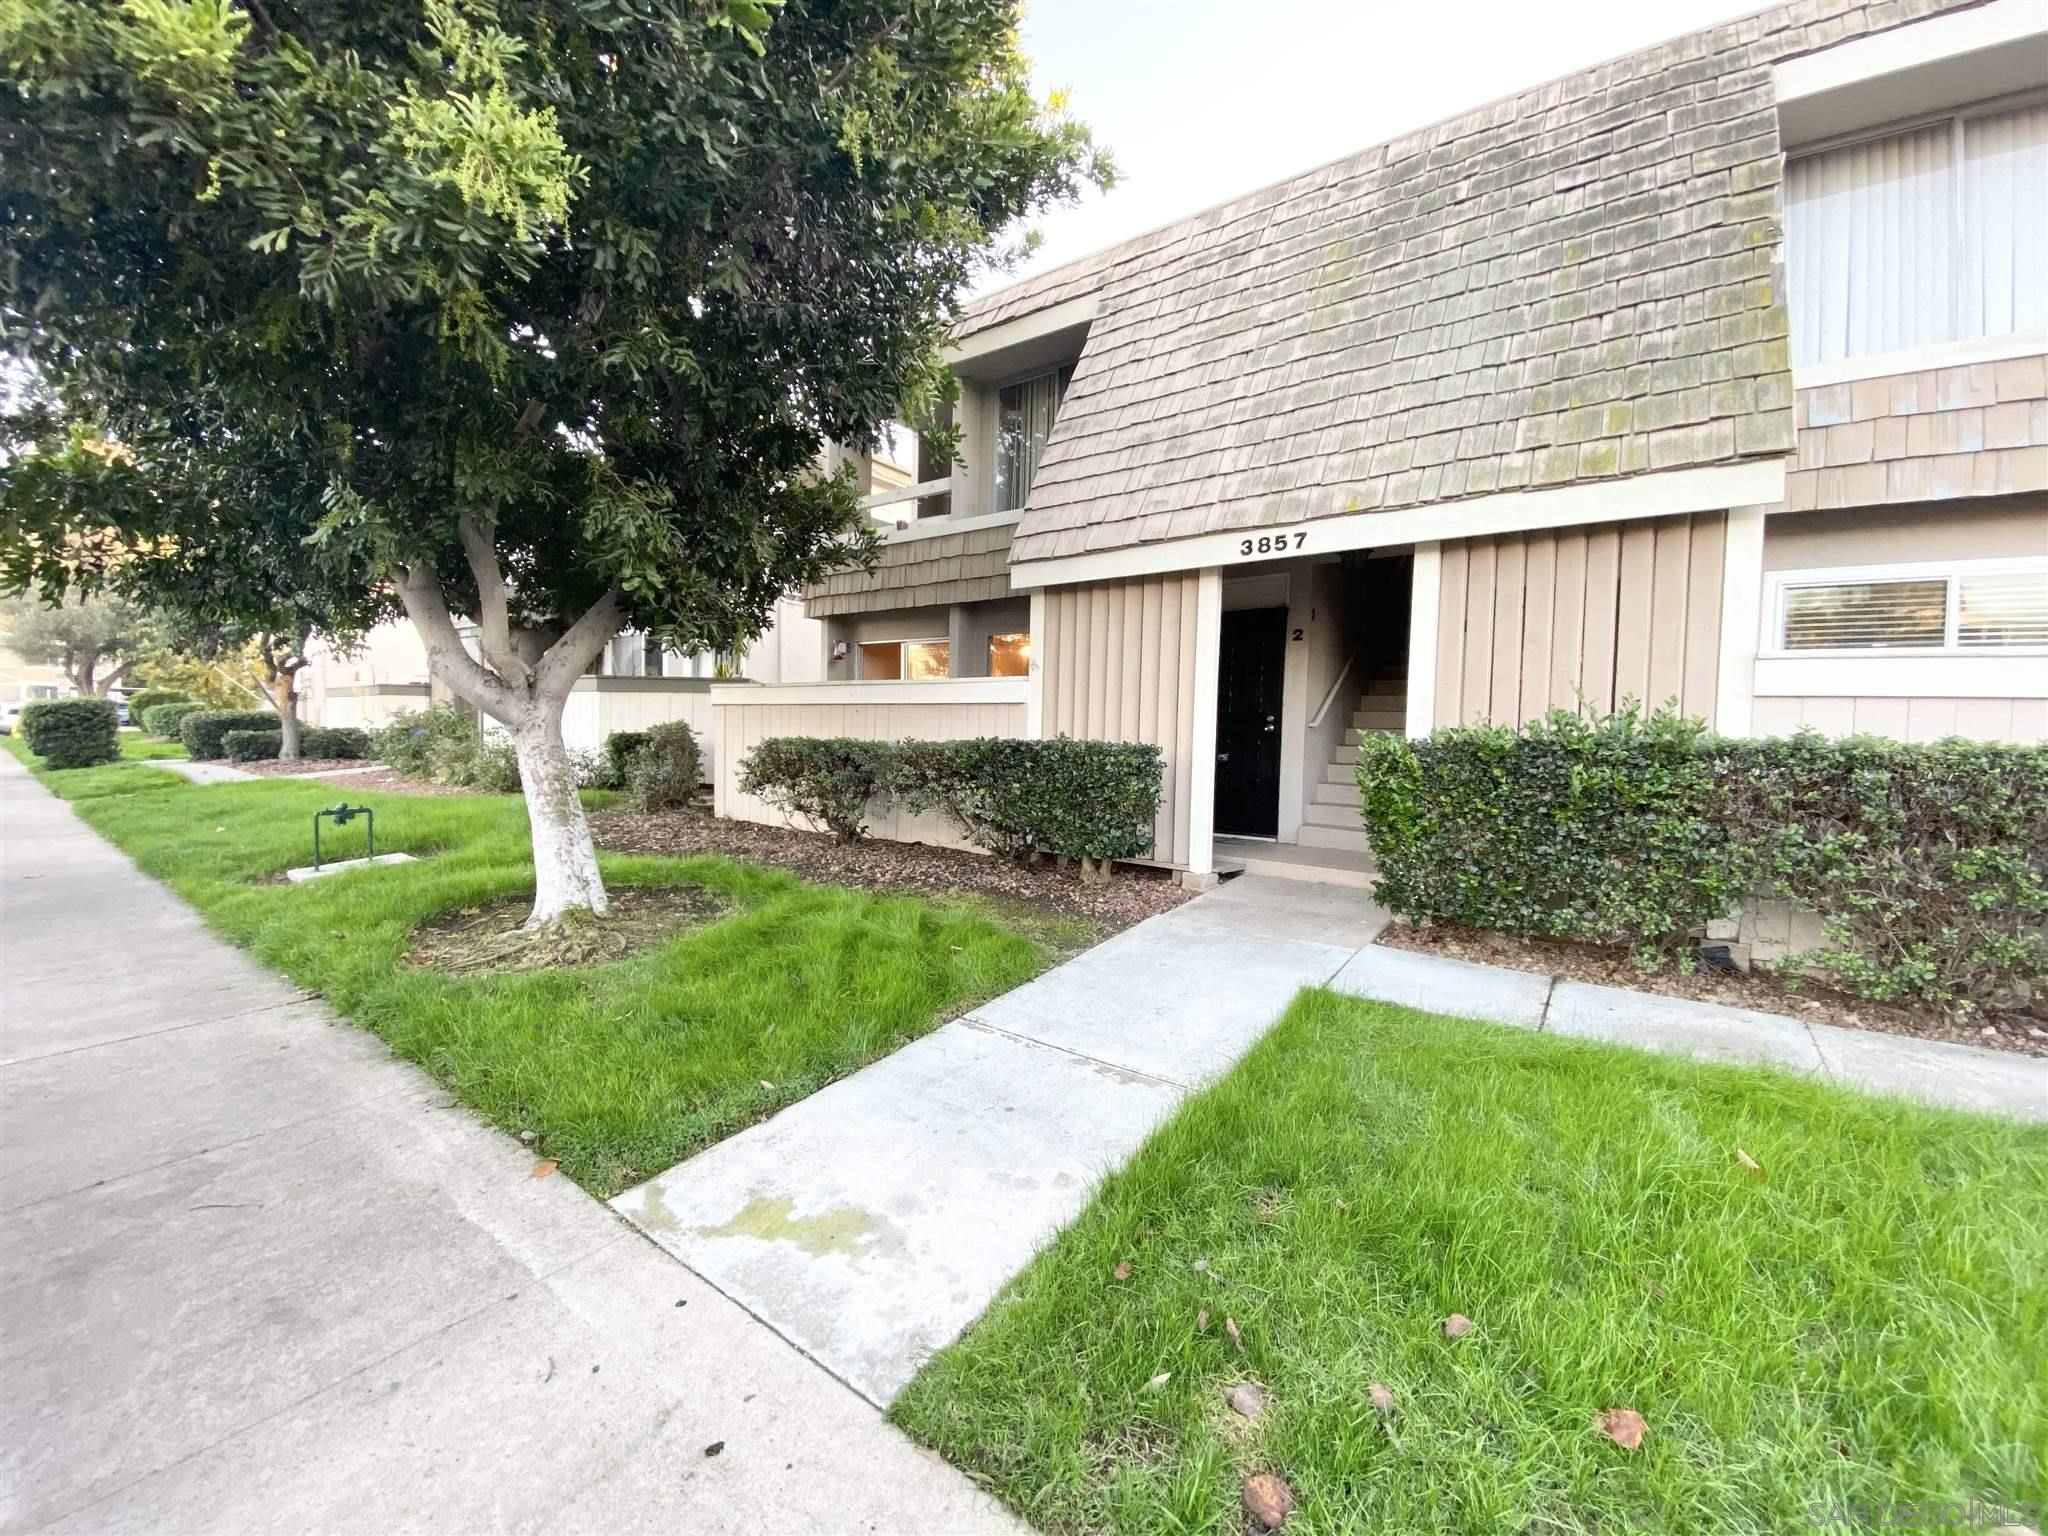 Main Photo: POINT LOMA Condo for sale : 3 bedrooms : 3857 Groton Street #2 in San Diego